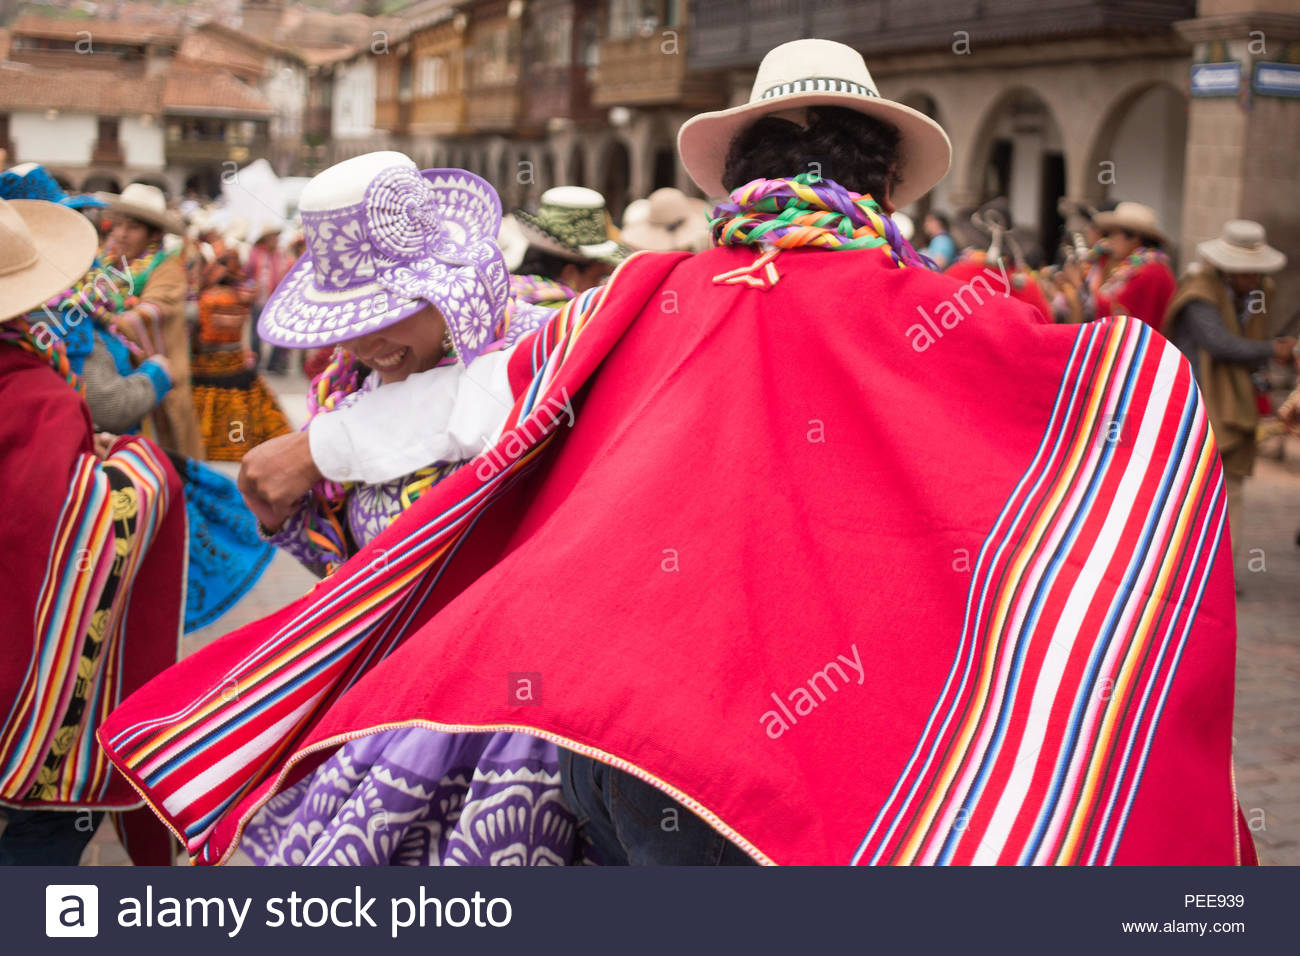 Men and women from the nearby regions of Cusco wear dresses and ponchos, singing and playing instruments at a yearly Carnival celebration of harvest and fertility in the Plaza de Armas in Cusco. Stock Photo